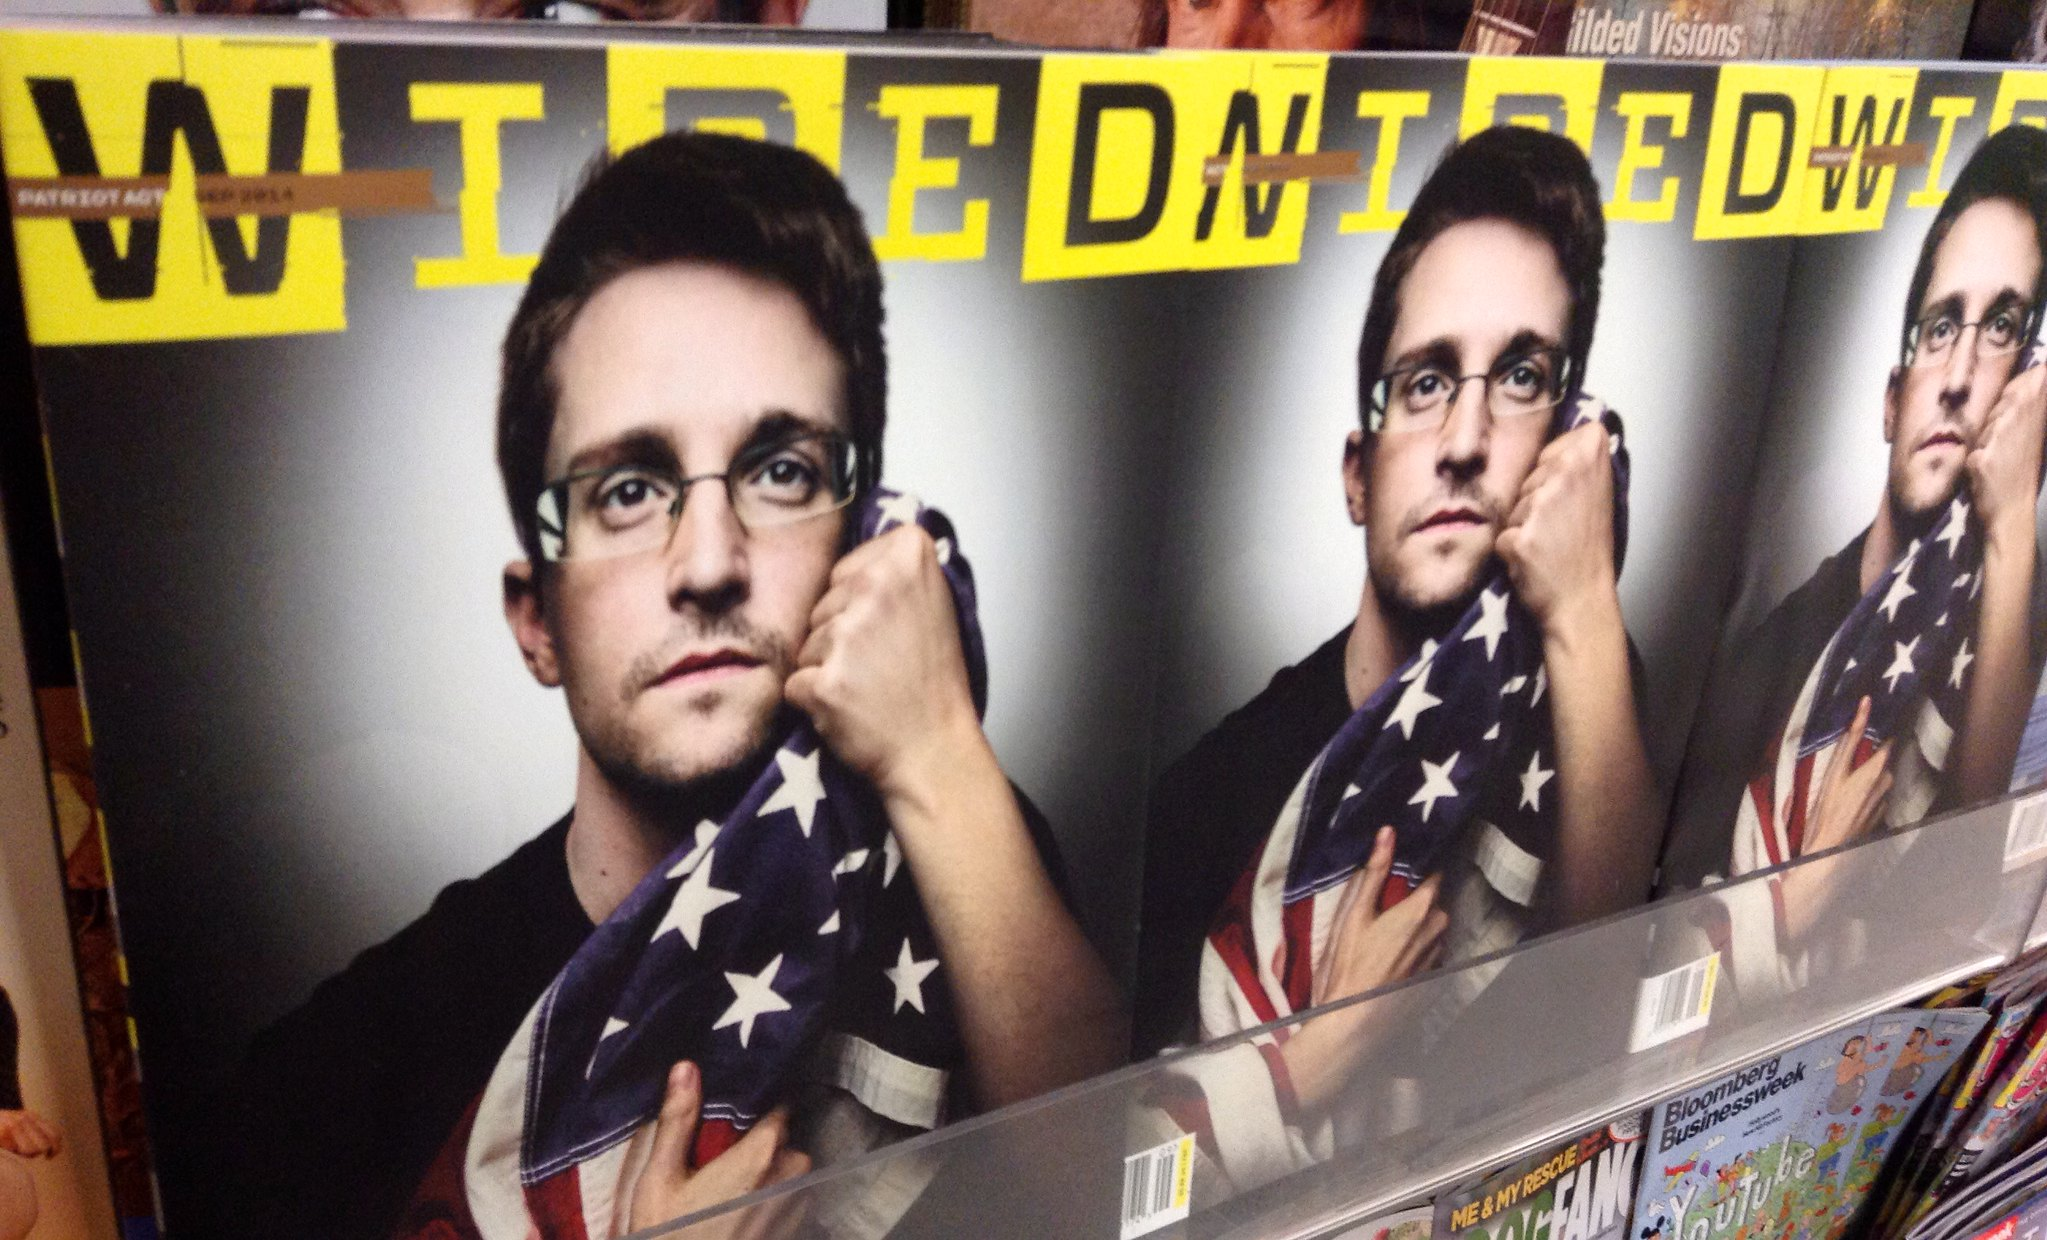 Edward Snowden appears on the cover of Wired Magazine, clutching an American flag and looking off into the distance.